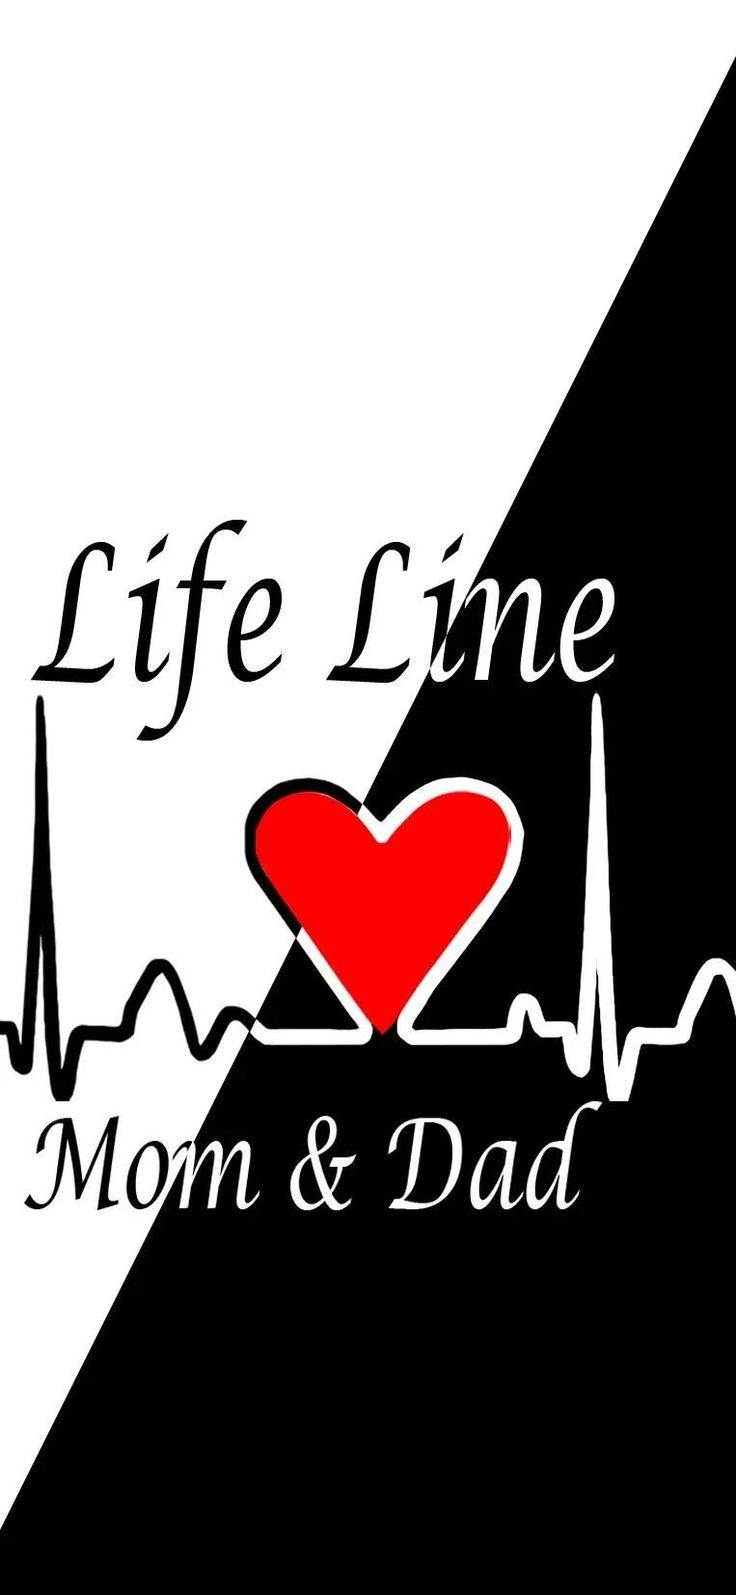 A Day In My Life In 2021 Mom And Dad Quotes Dad Quotes Dear Mom And Dad